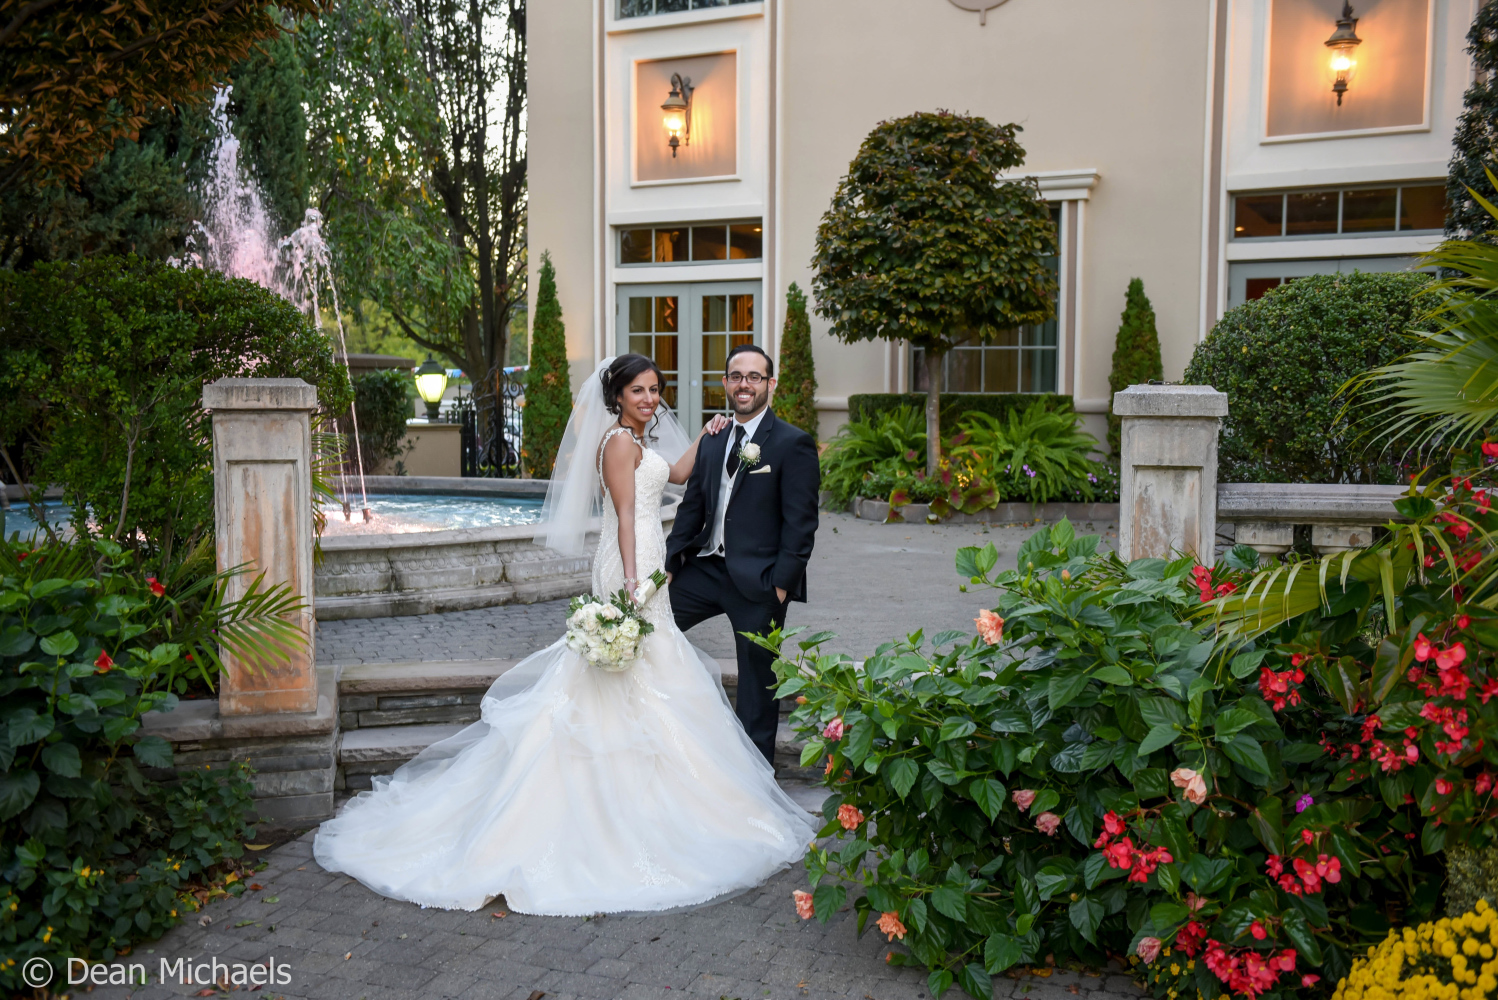 wedding-photographer-gallery-2-PAP9GKP5356M.jpg